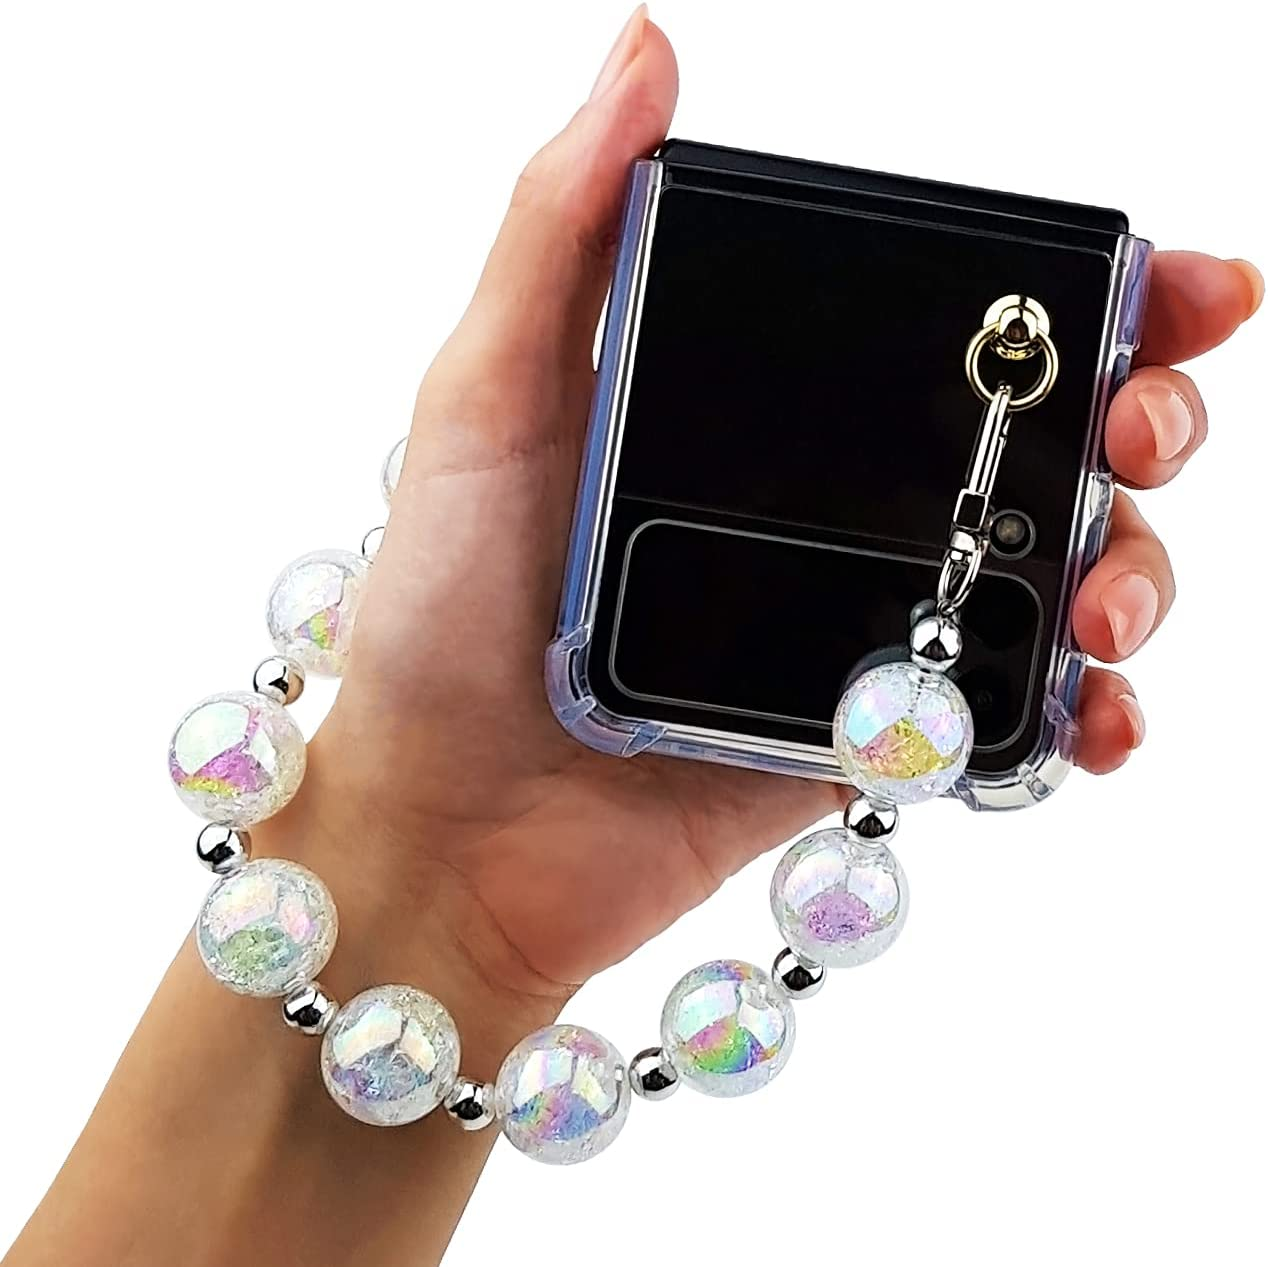 Qoosan Bling Beads Wrist Strap Clear Cover for with Samsung Galaxy Z Flip 3 Case 5G (2021) for Women, Iced White